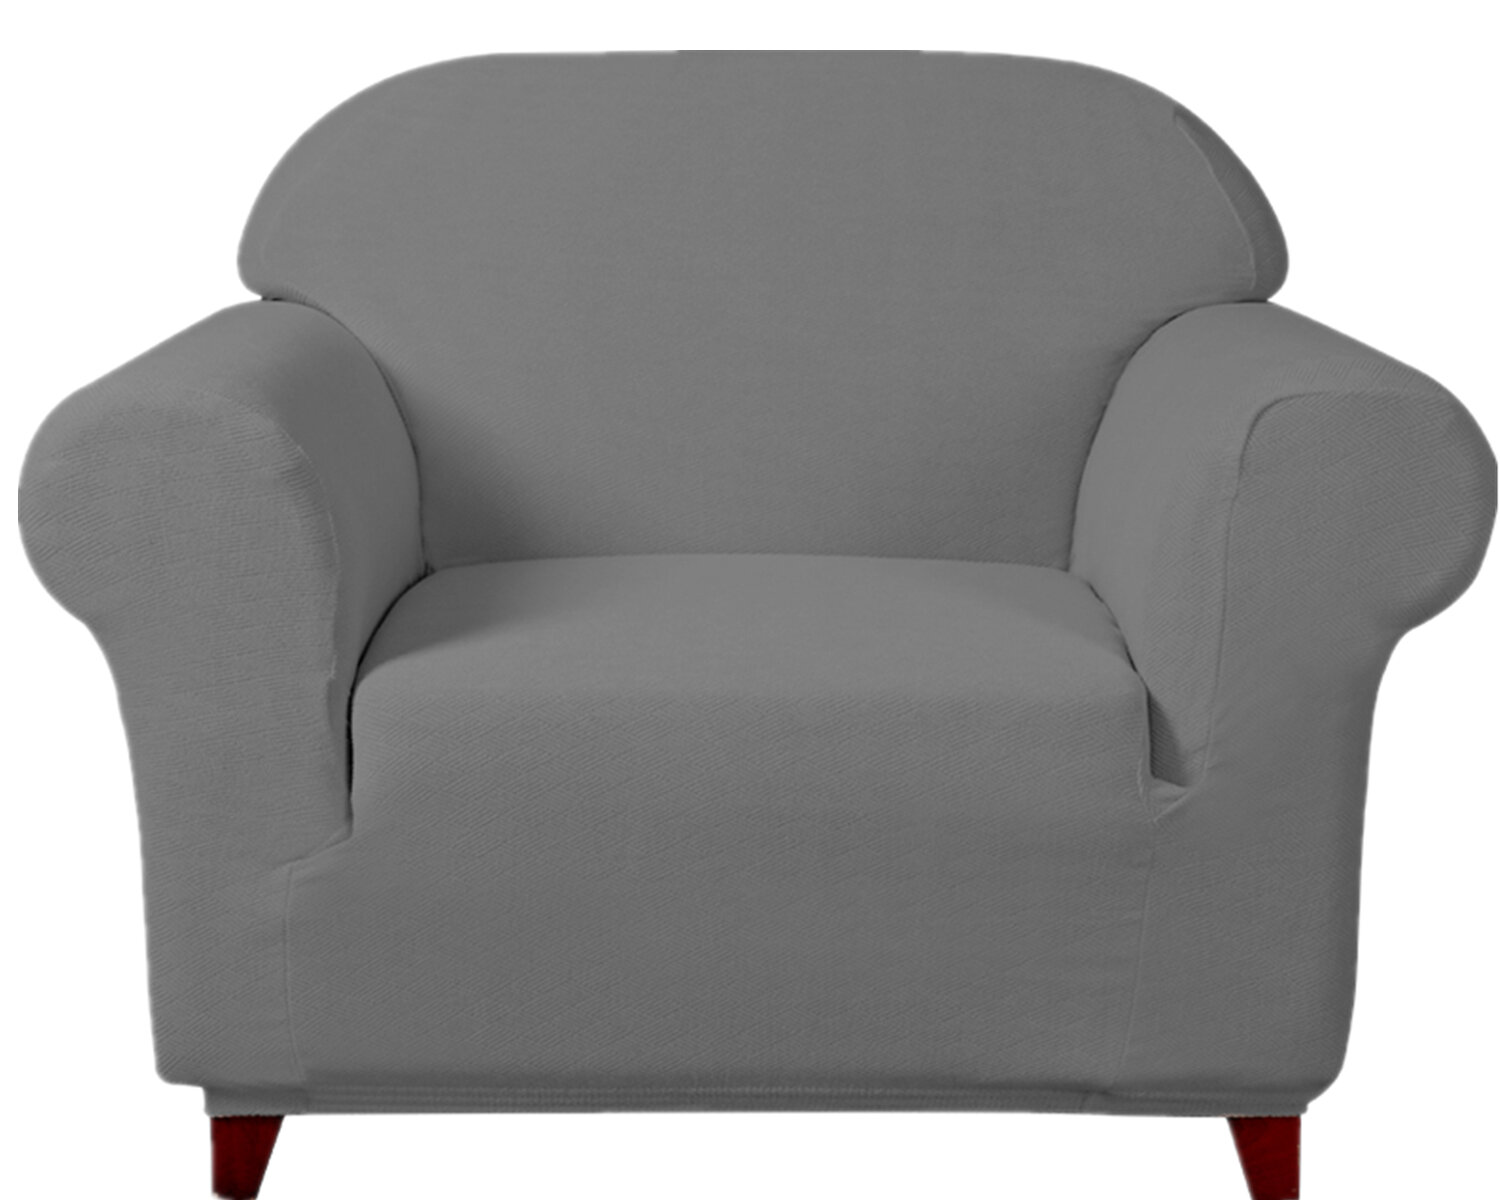 ultra soft stretch fabric armchair slipcovers removable anti dirty fitted furniture protector